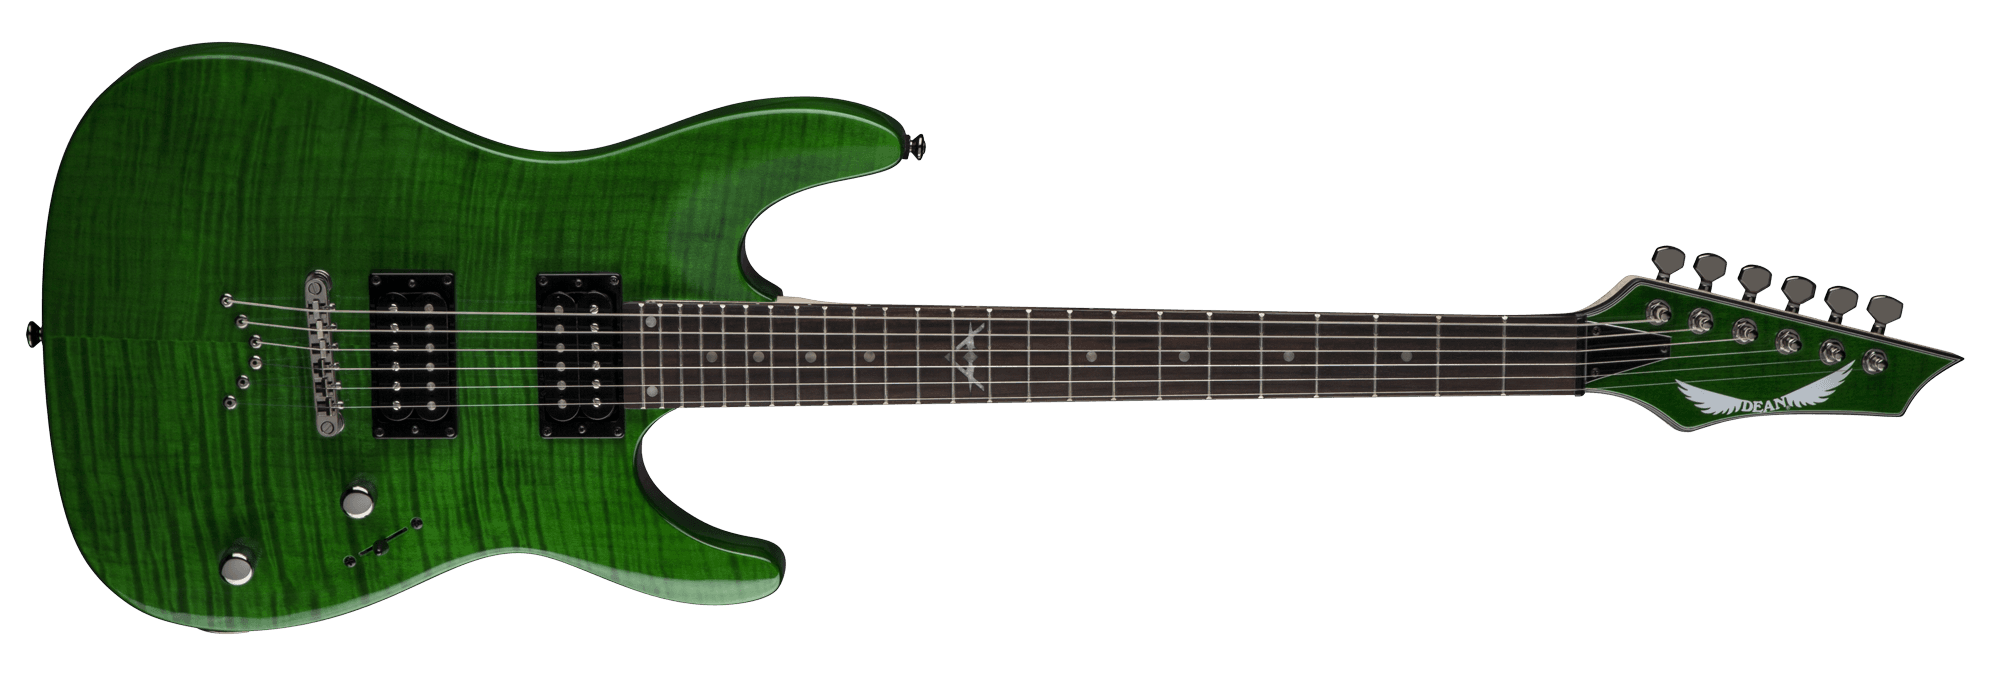 Dean Guitars Image